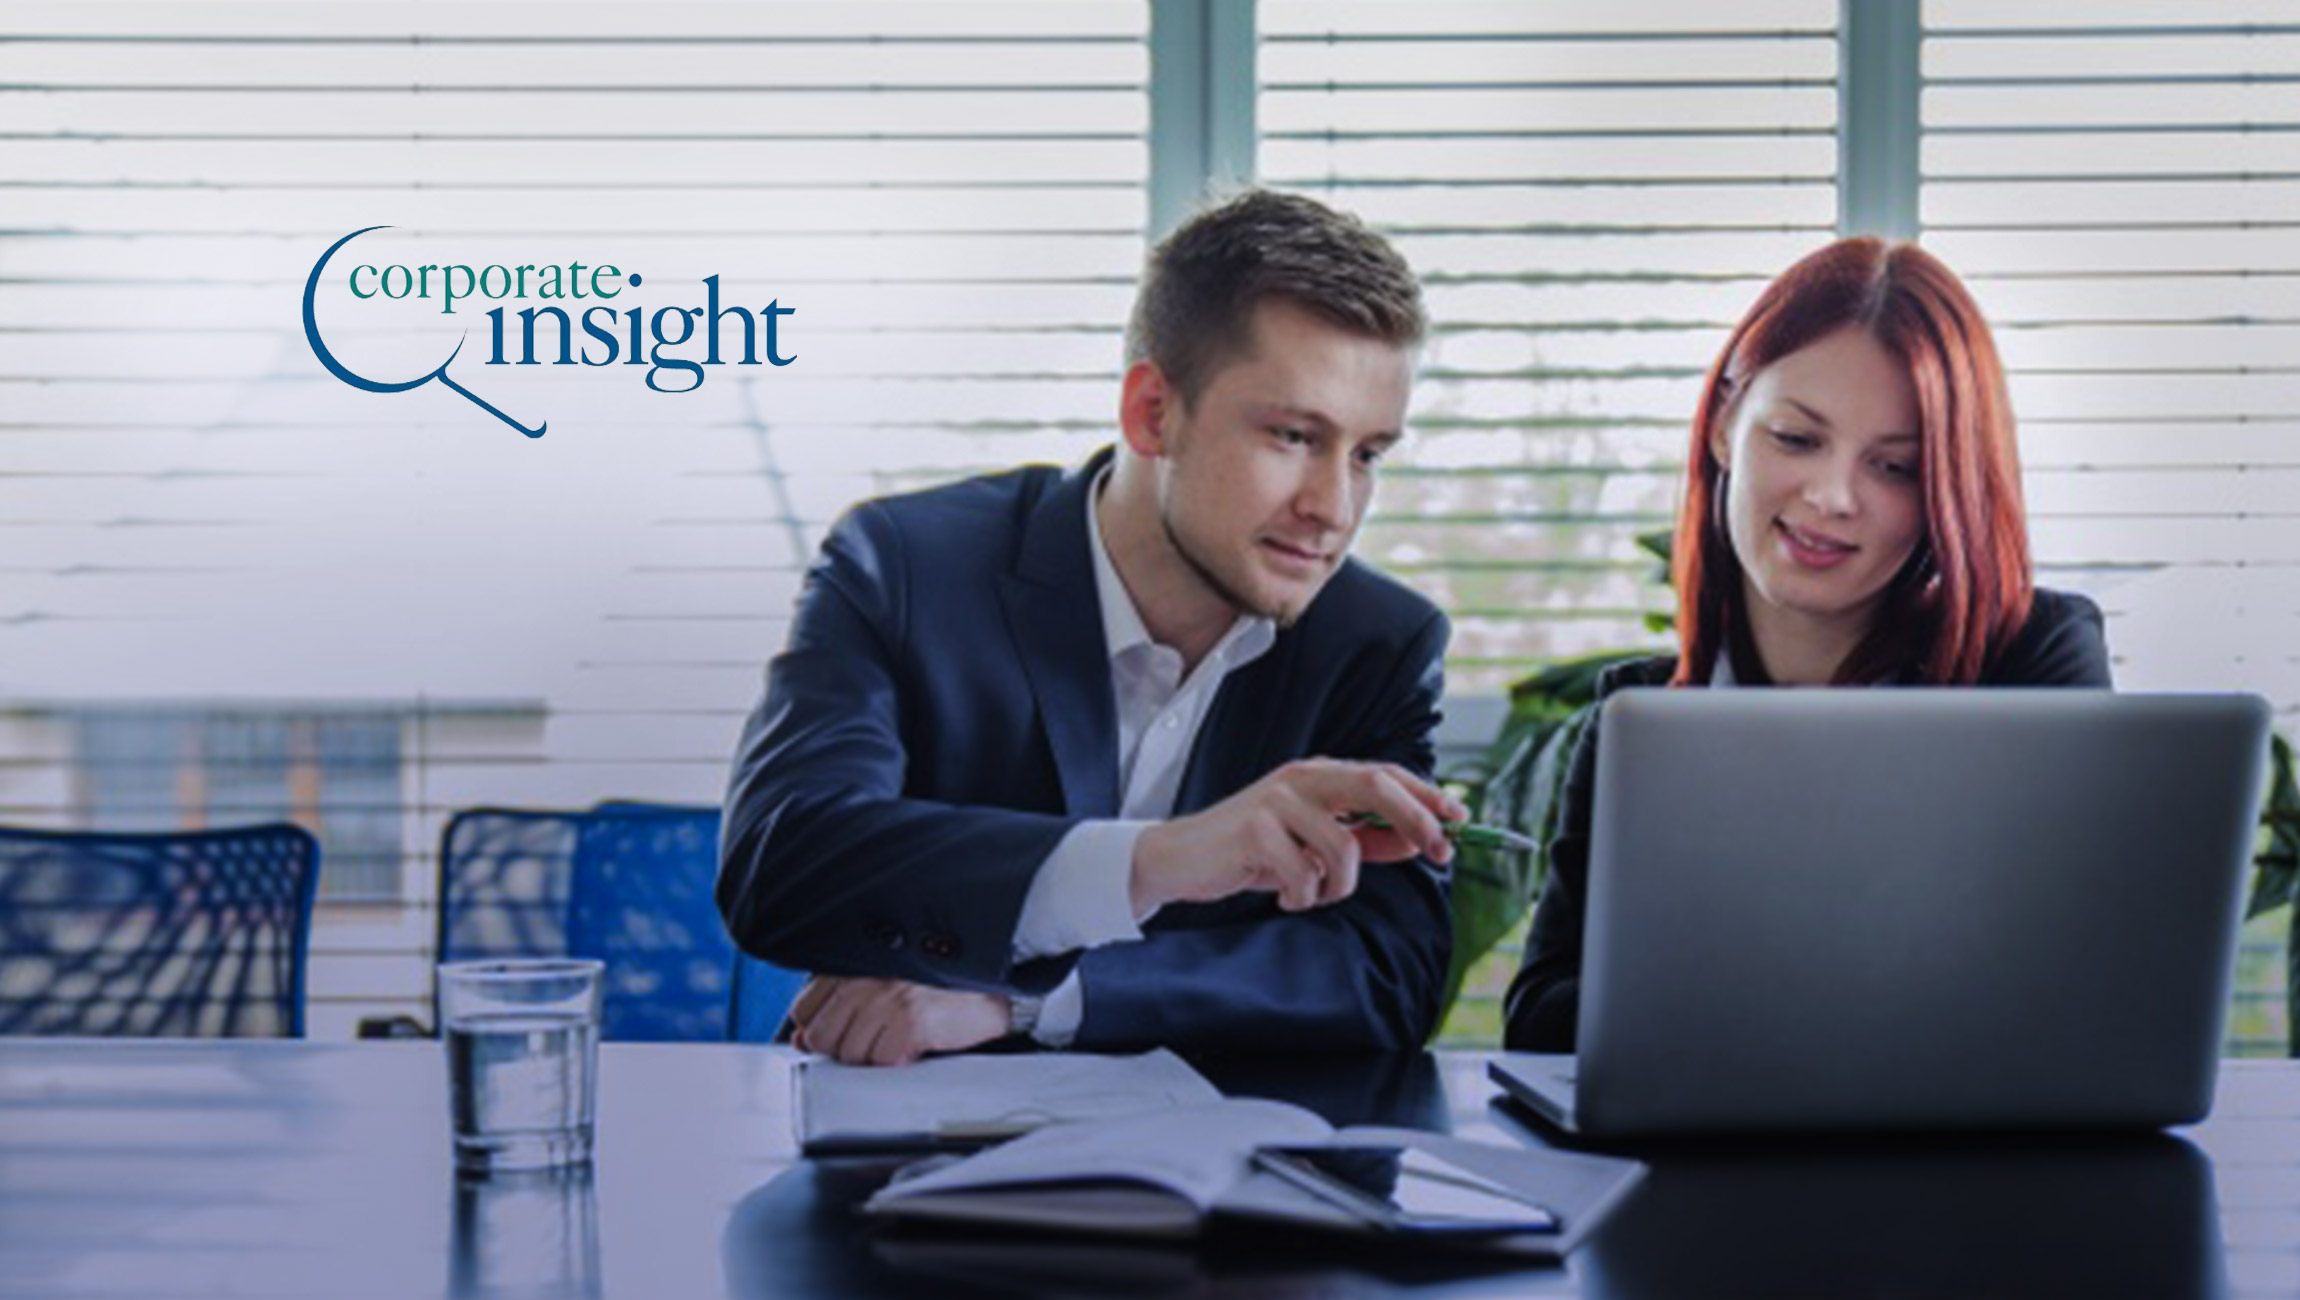 New Corporate Insight Benchmark Study Reveals Opportunities to Increase Client Engagement Across Generational Groups